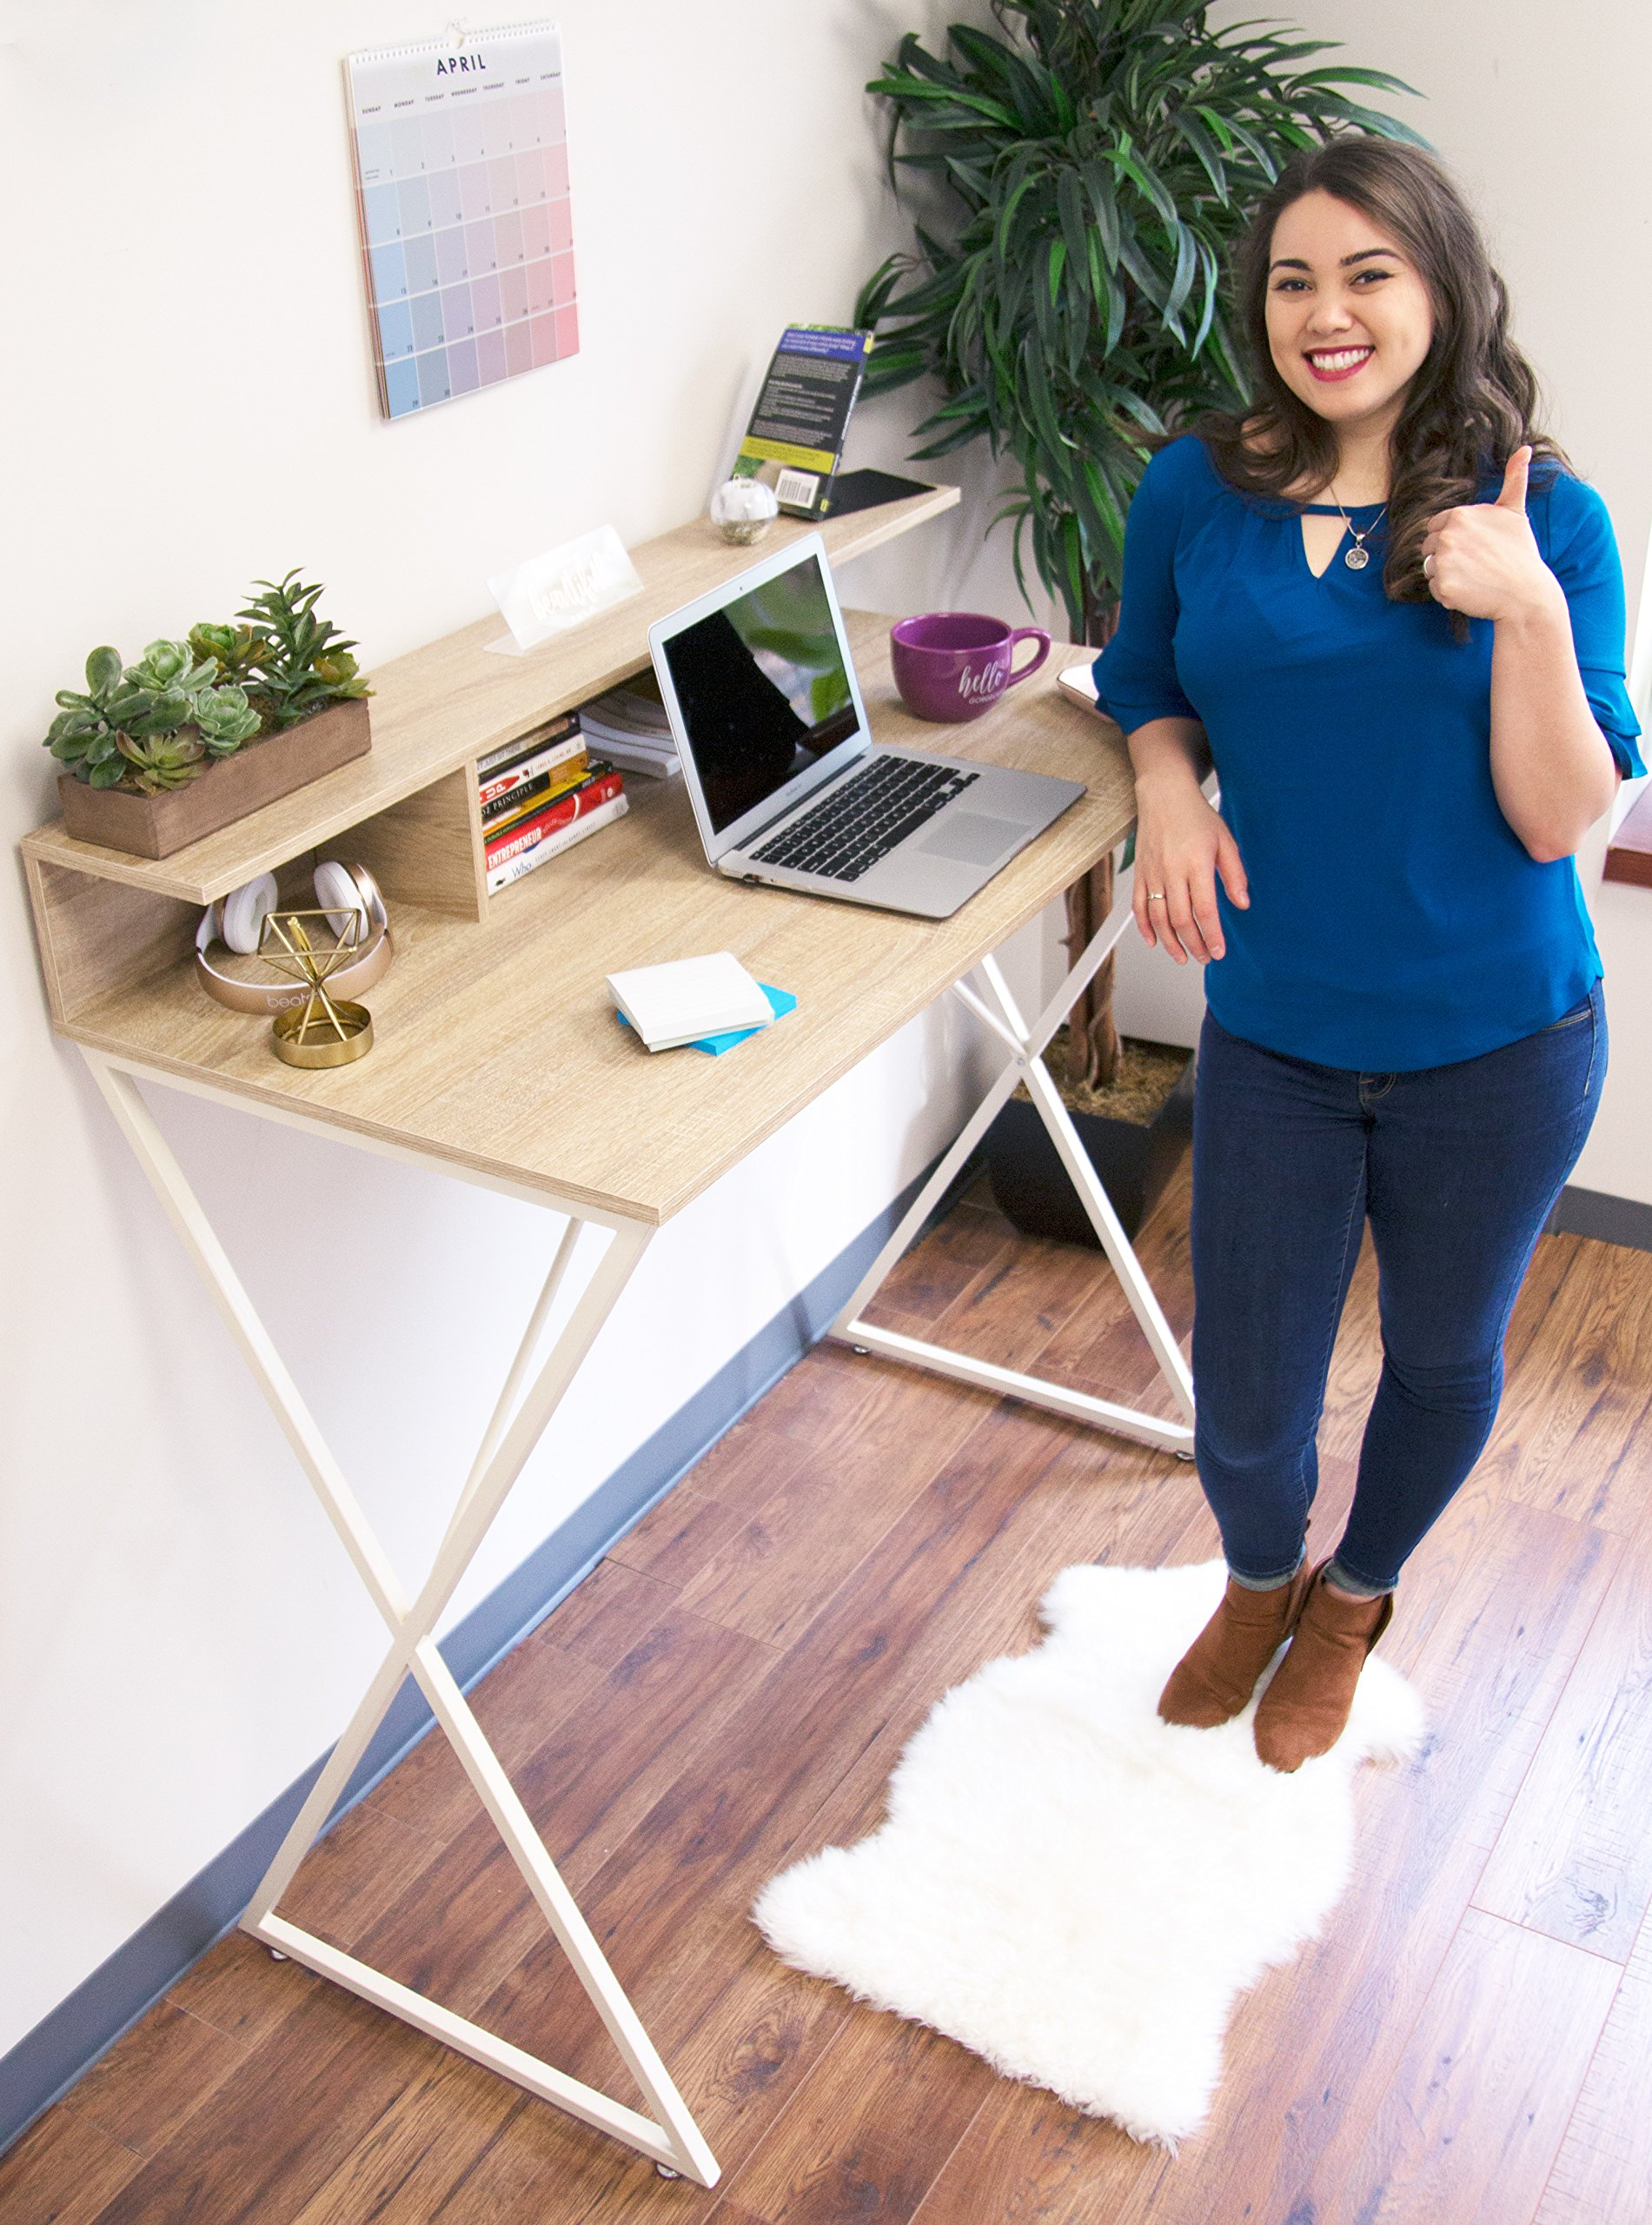 Joy Desk by Stand Steady - Modern Home Office Standing Desk Workstation with Storage Cubbies! - 47.5'' x 41.5'' by Stand Steady (Image #9)